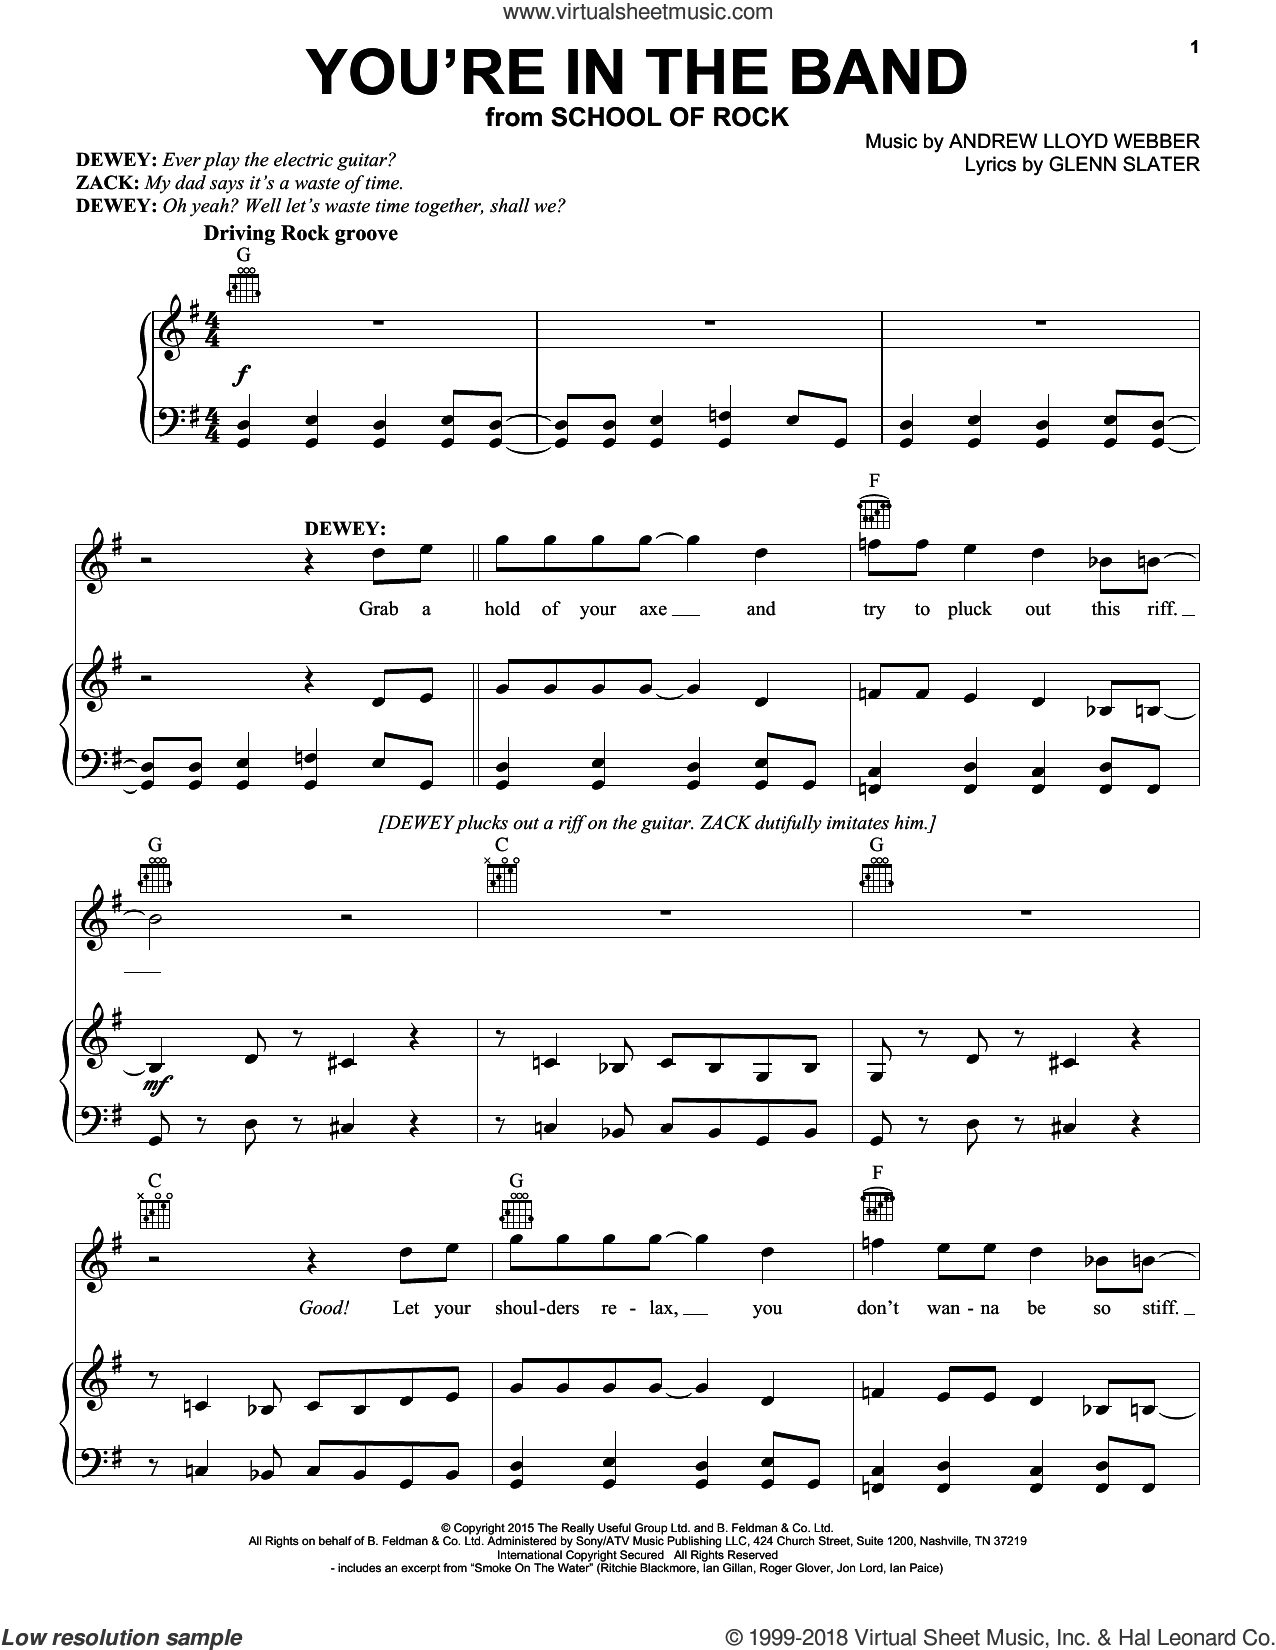 You're In The Band (from School of Rock: The Musical) sheet music for voice, piano or guitar by Andrew Lloyd Webber and Glenn Slater, intermediate skill level